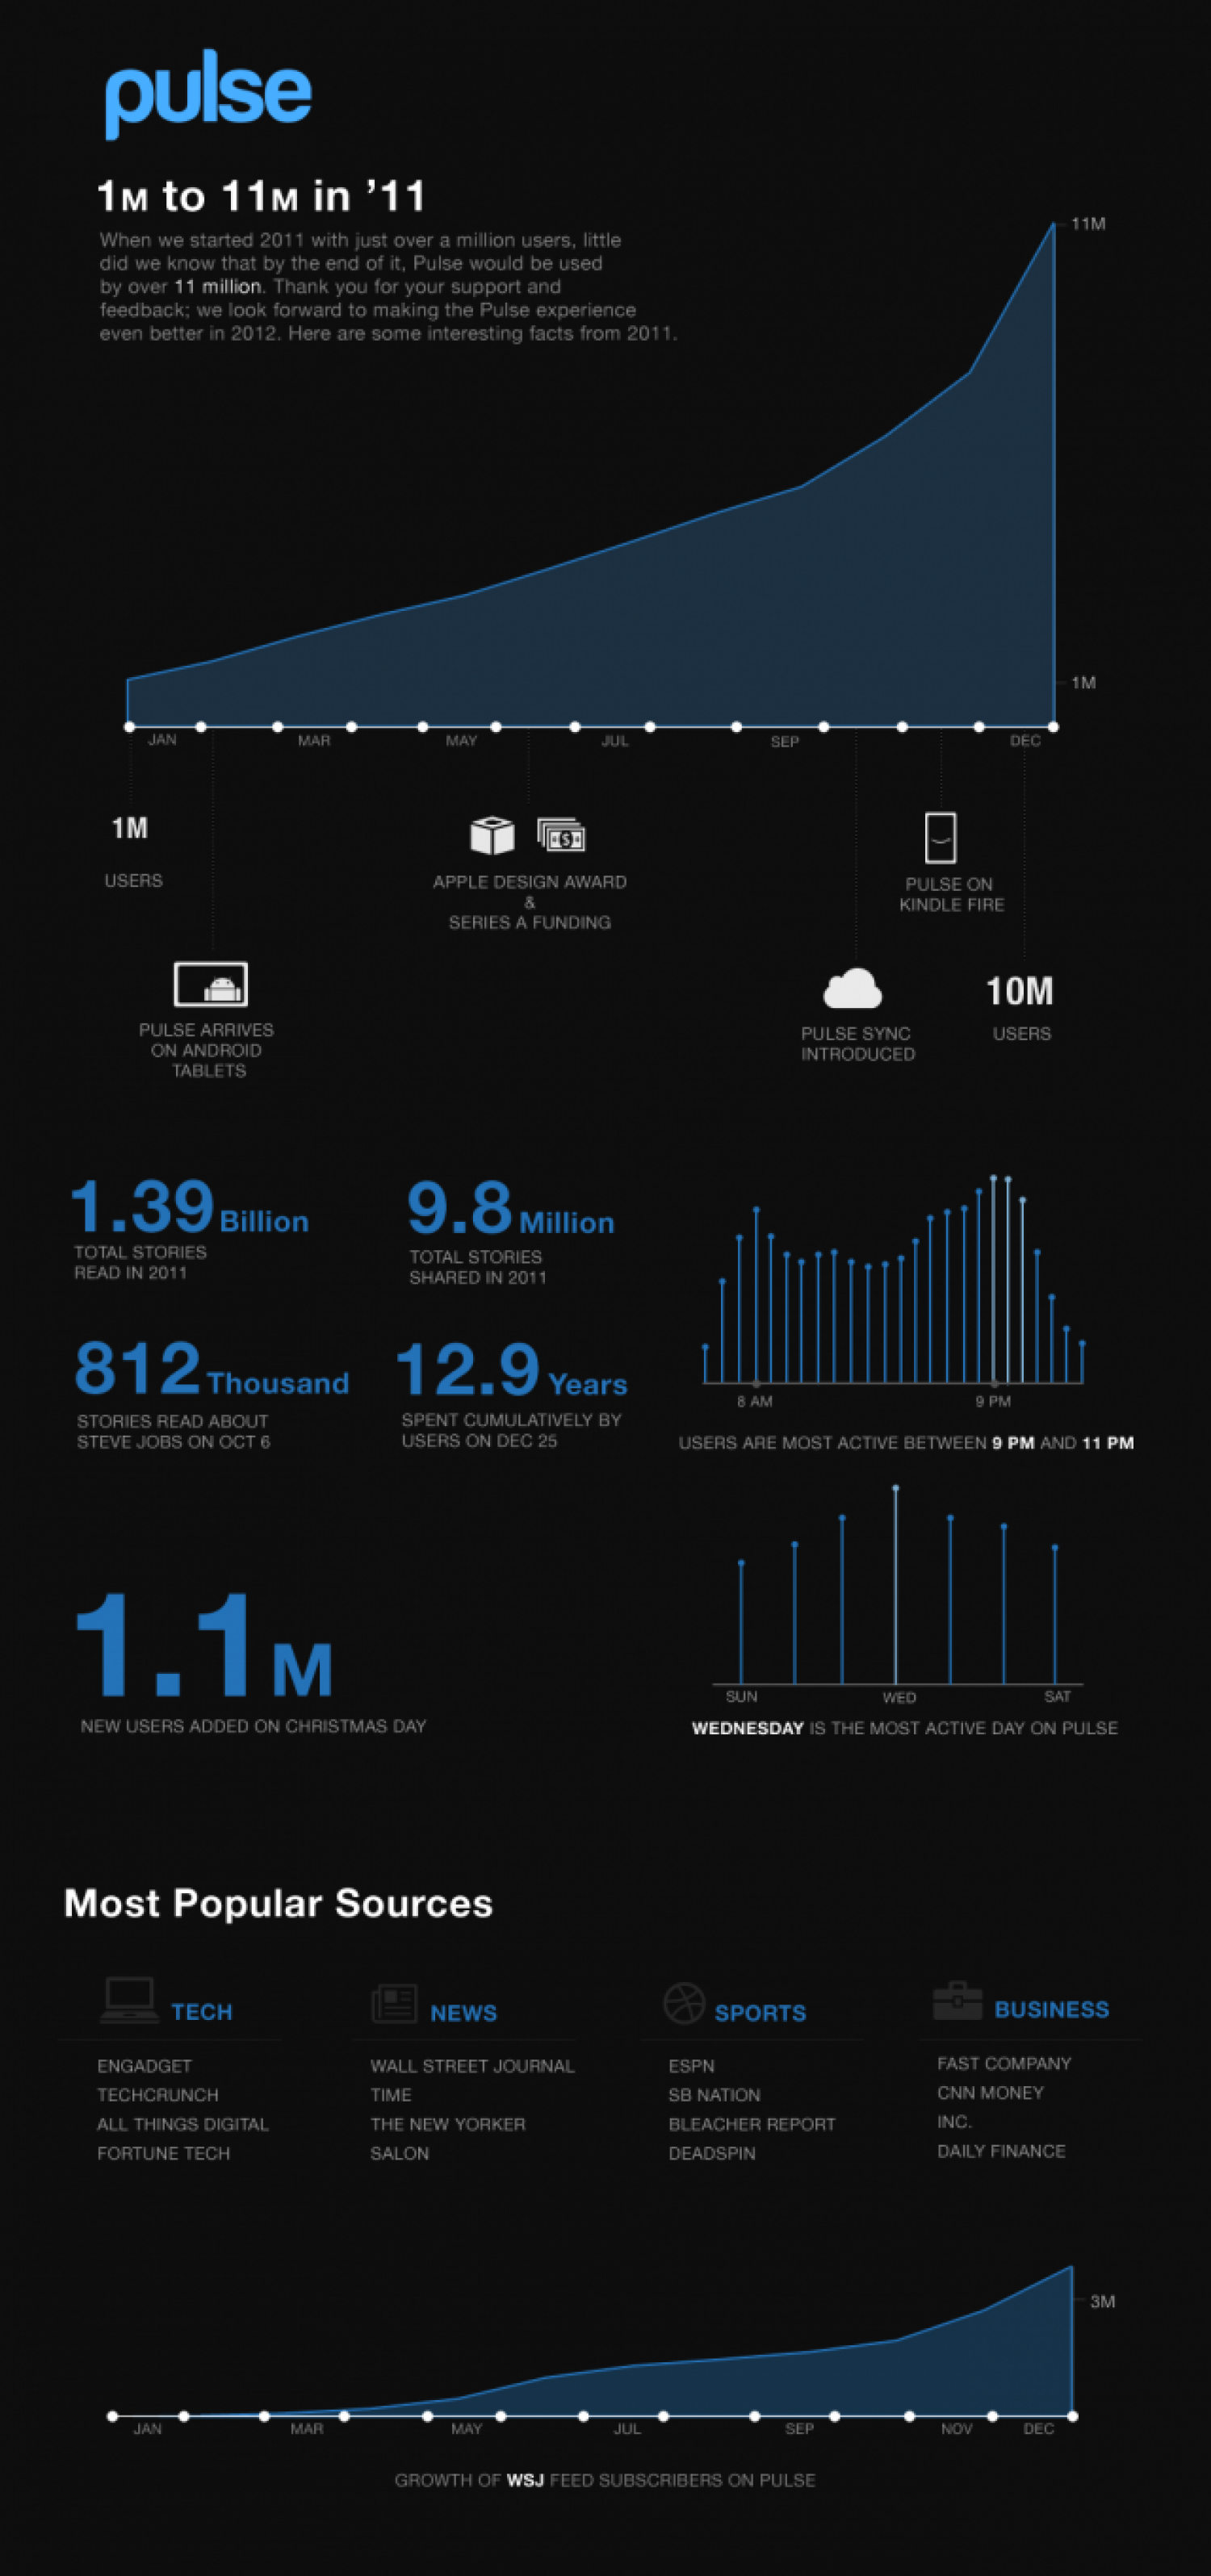 Pulse 1M to 11M in '11 Infographic